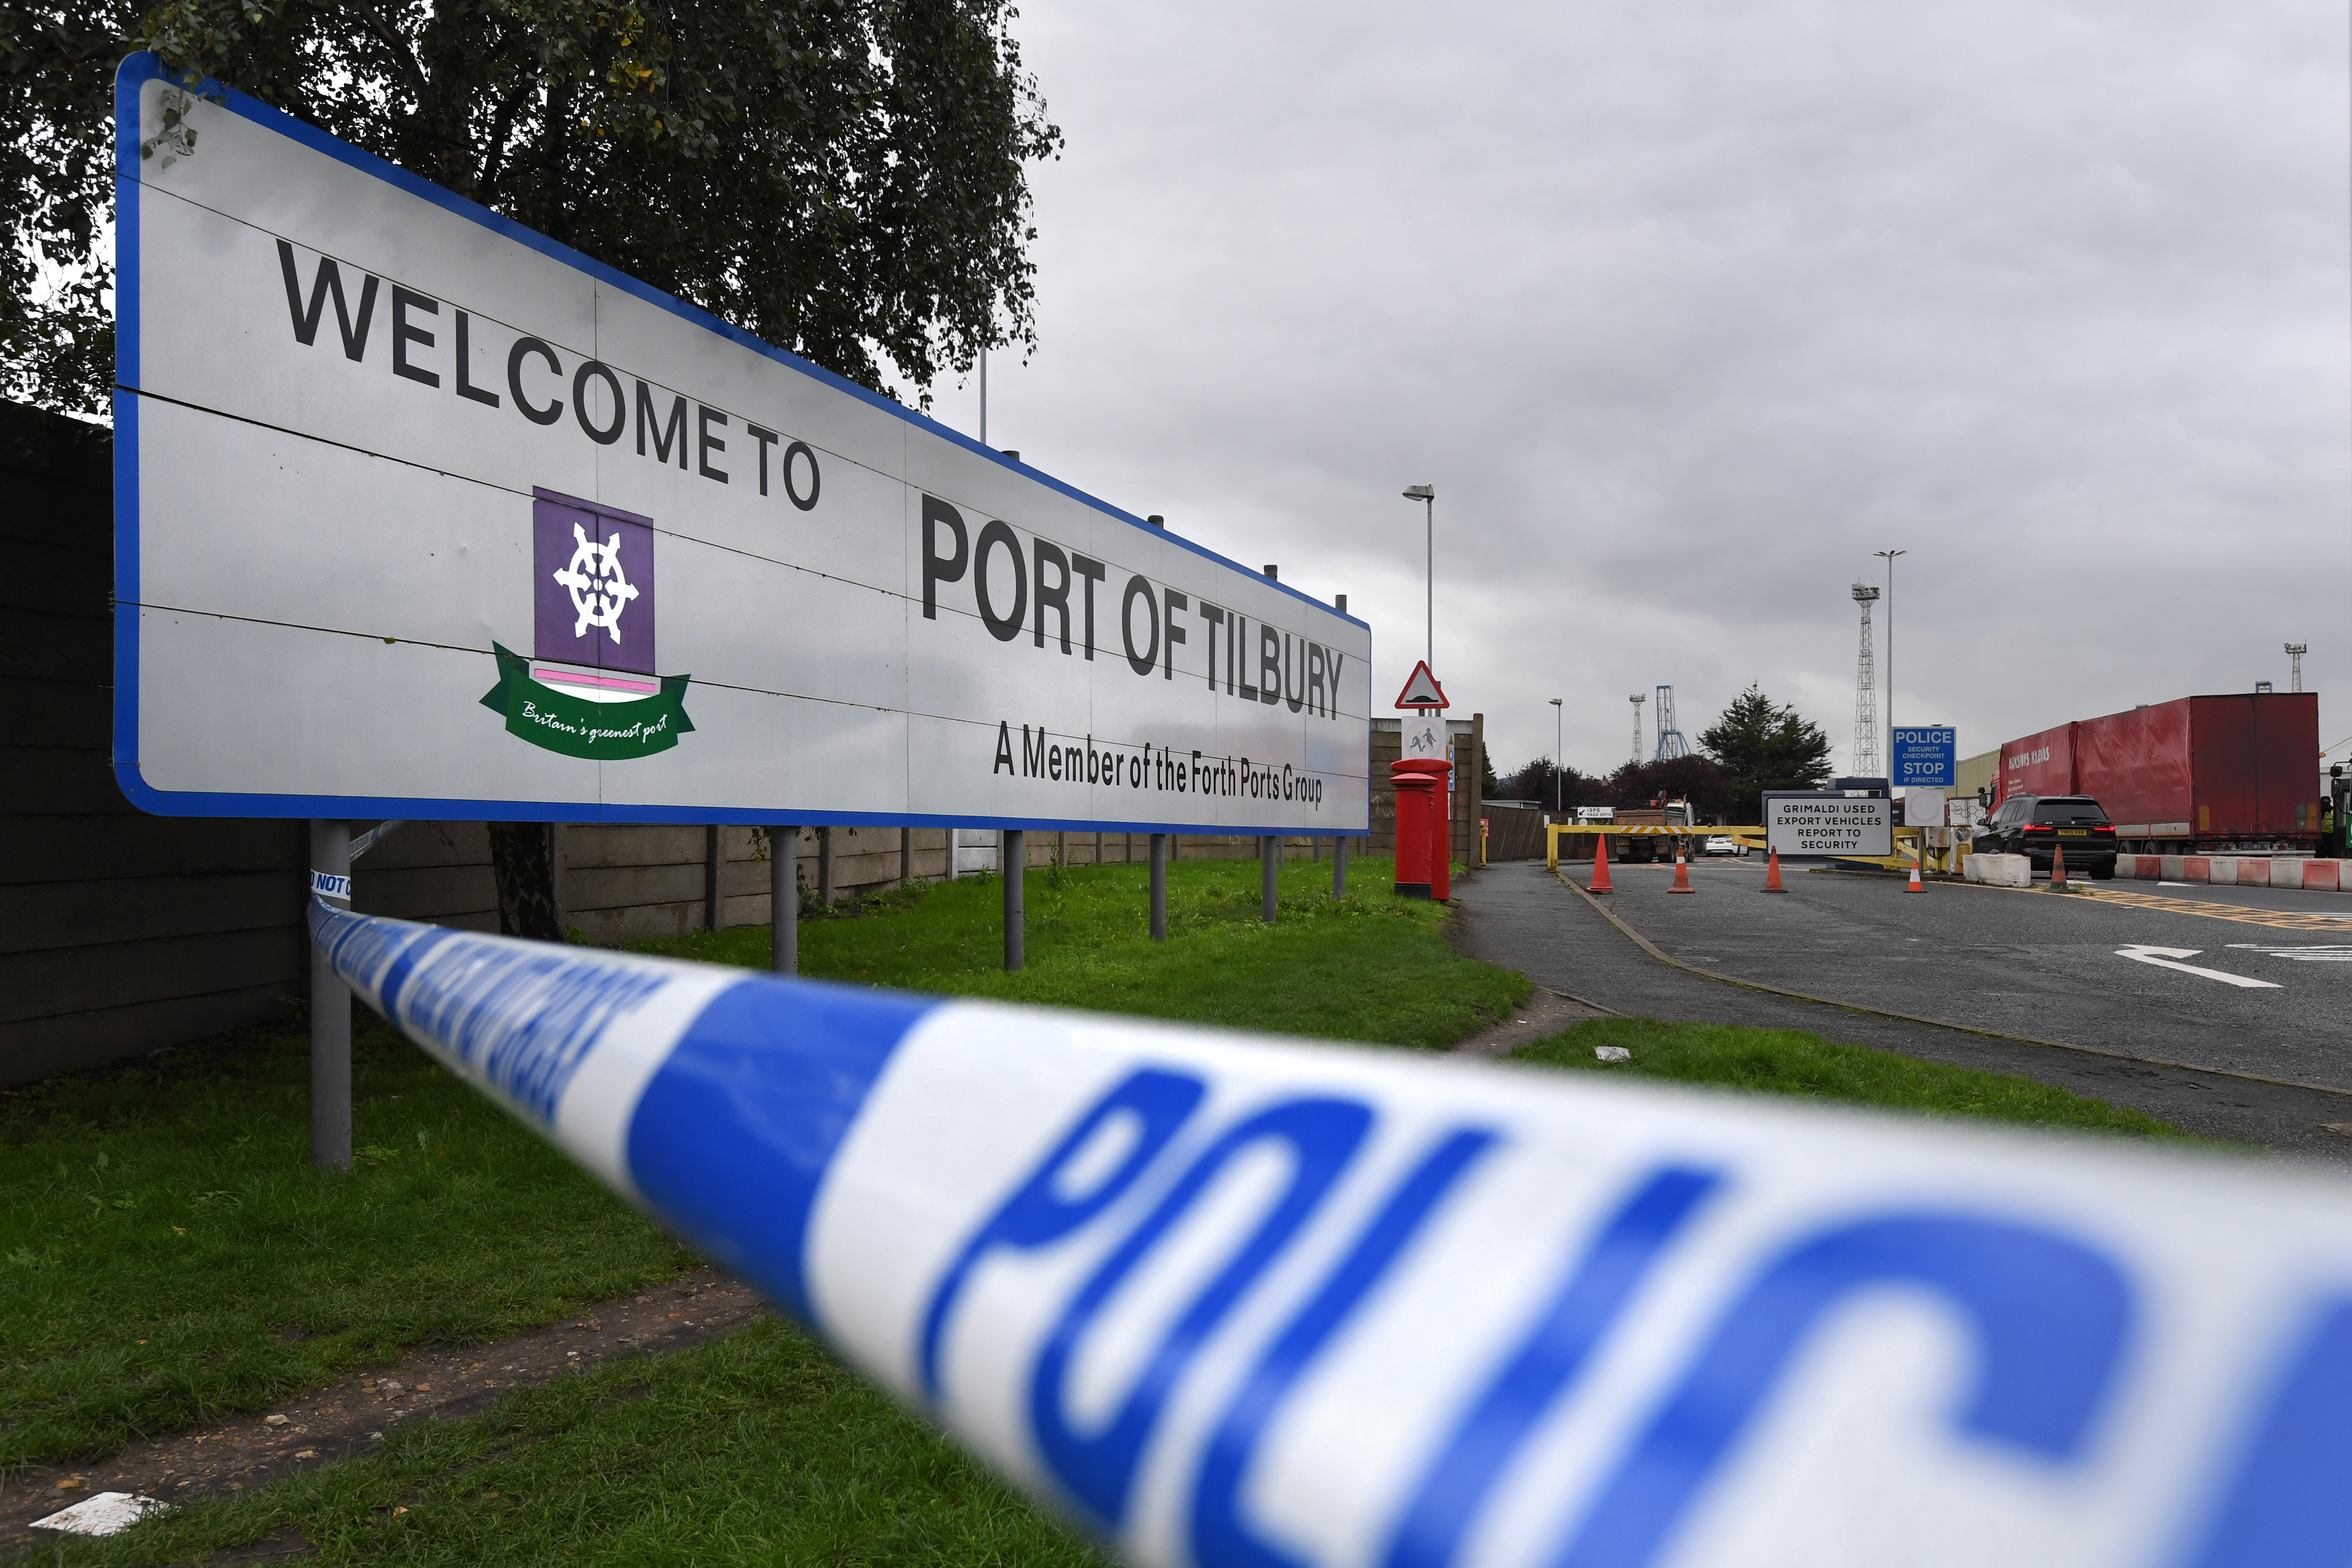 Bodies found in lorry container in Essex